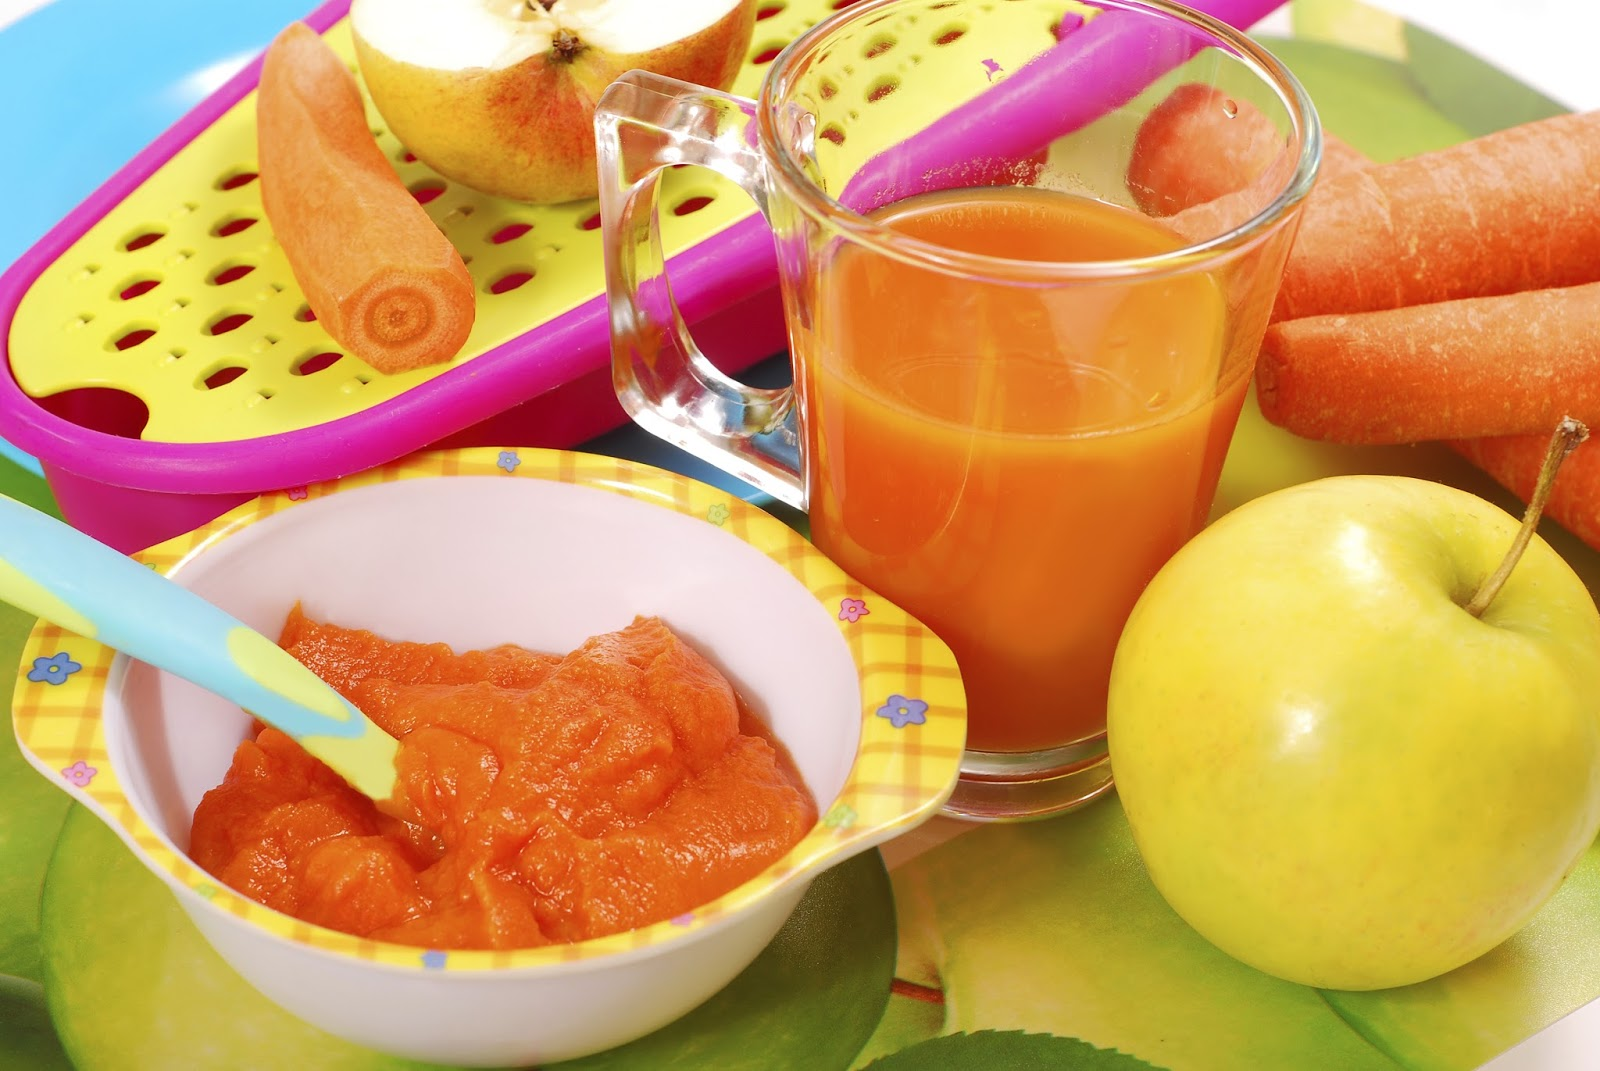 When Can We Start Solid Food For Infants